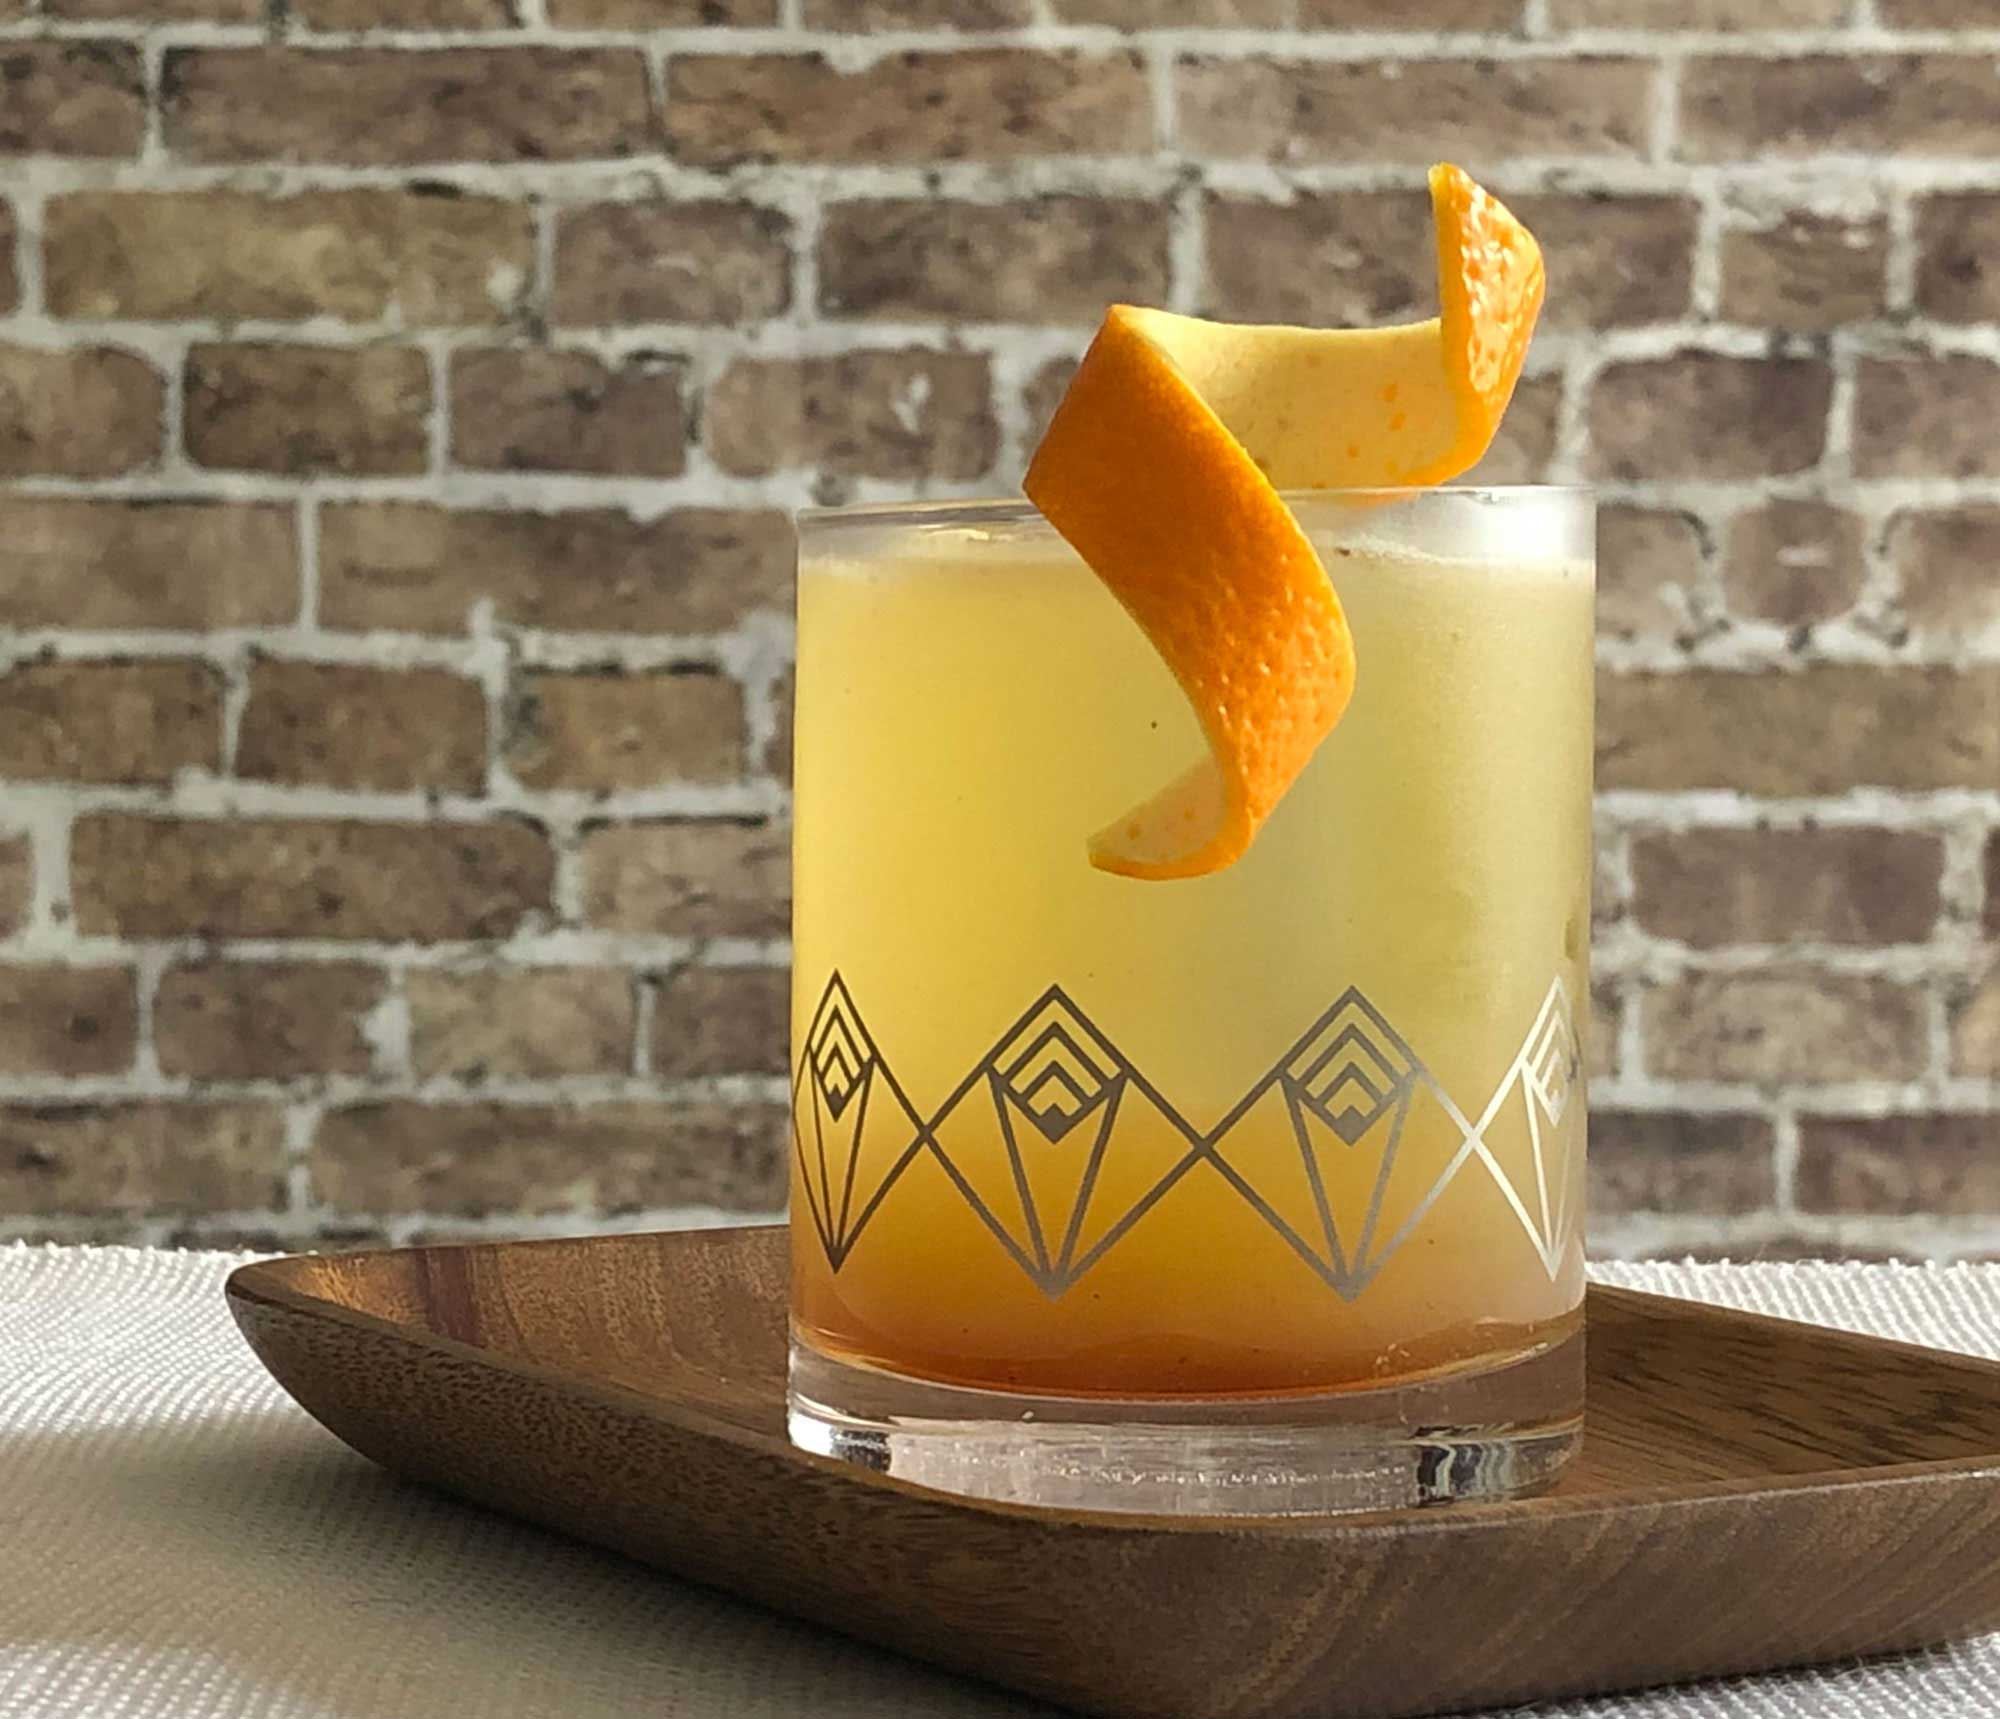 An example of the Prado 86, the mixed drink (cocktail), by Adam Hodak, Green Russell, Denver, featuring mezcal, orange-flavored liqueur, pineapple juice, orange juice, simple syrup, and St. Elizabeth Allspice Dram; photo by Lee Edwards